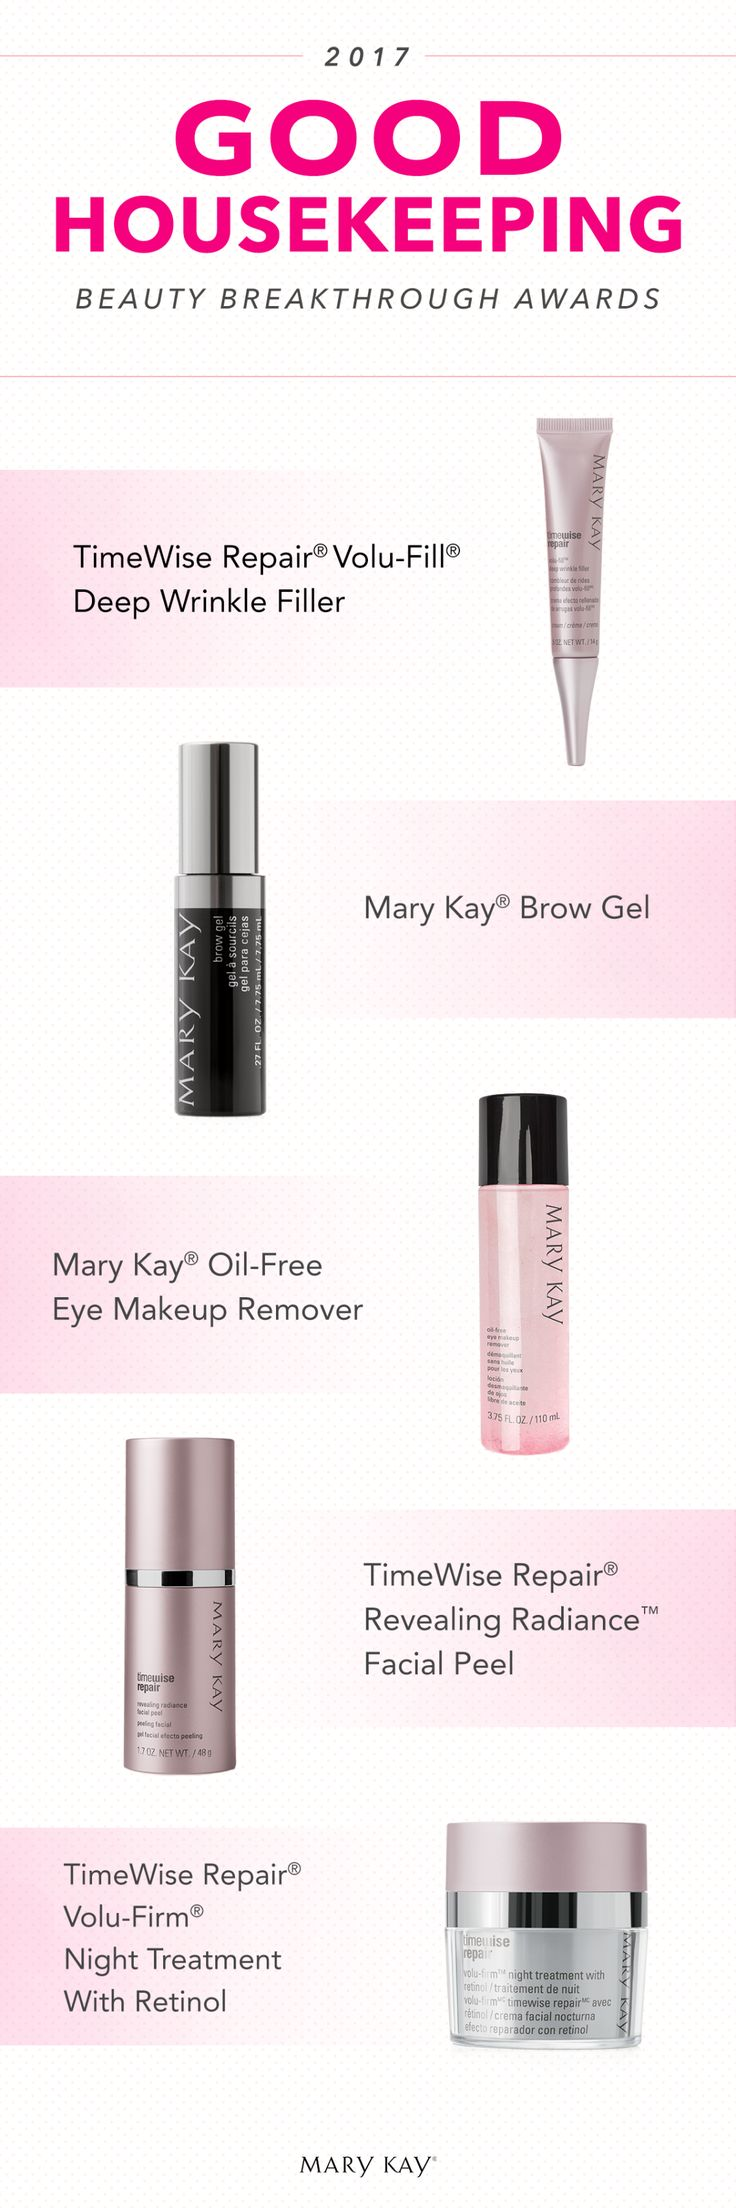 Mary kay online agreement on intouch - This Year S 100 Best Products Every Beauty Lover Needs Mary Kay